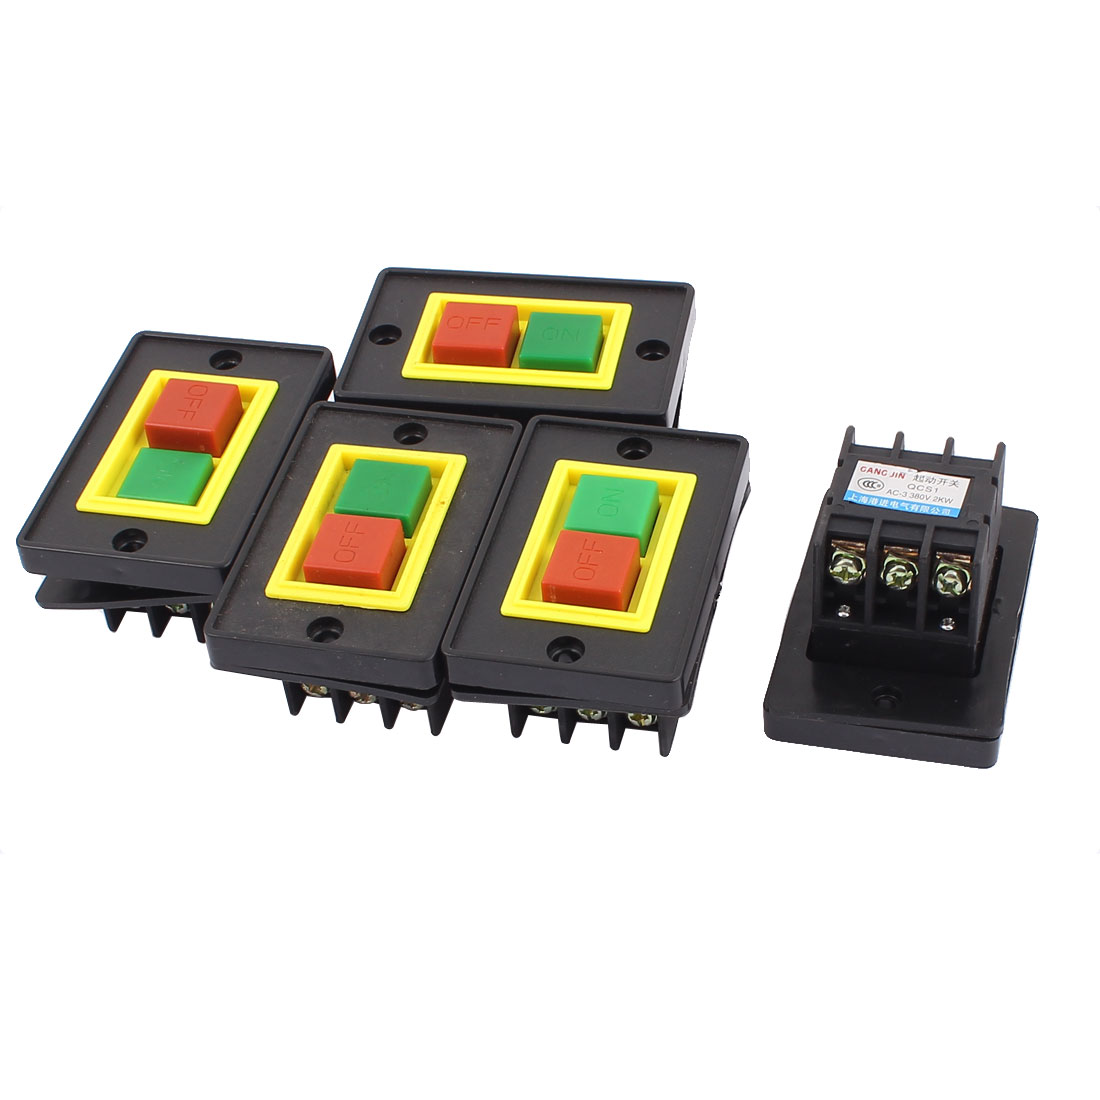 AC 380V 2KW Panel Mount ON/OFF Latching Square Push Button Switch 5pcs